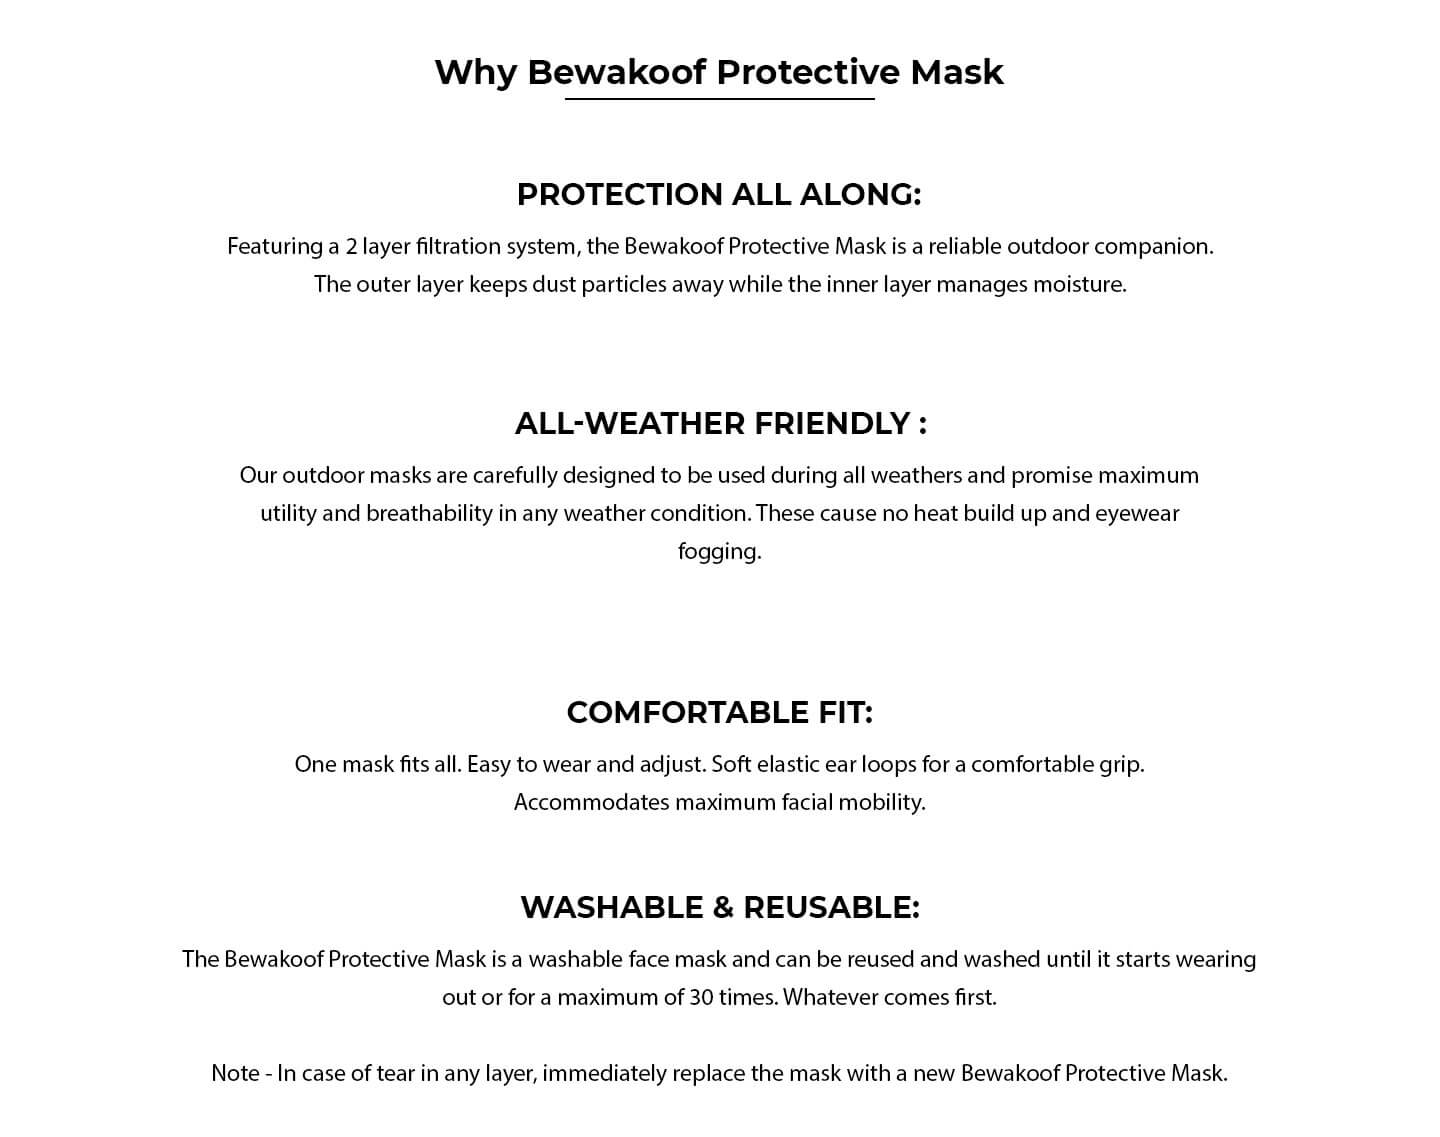 2-Layer Everyday Protective Masks - Pack of 3 (Constellations-Thunder Bolts-Swirl Pattern) Description Image Website 1@Bewakoof.com